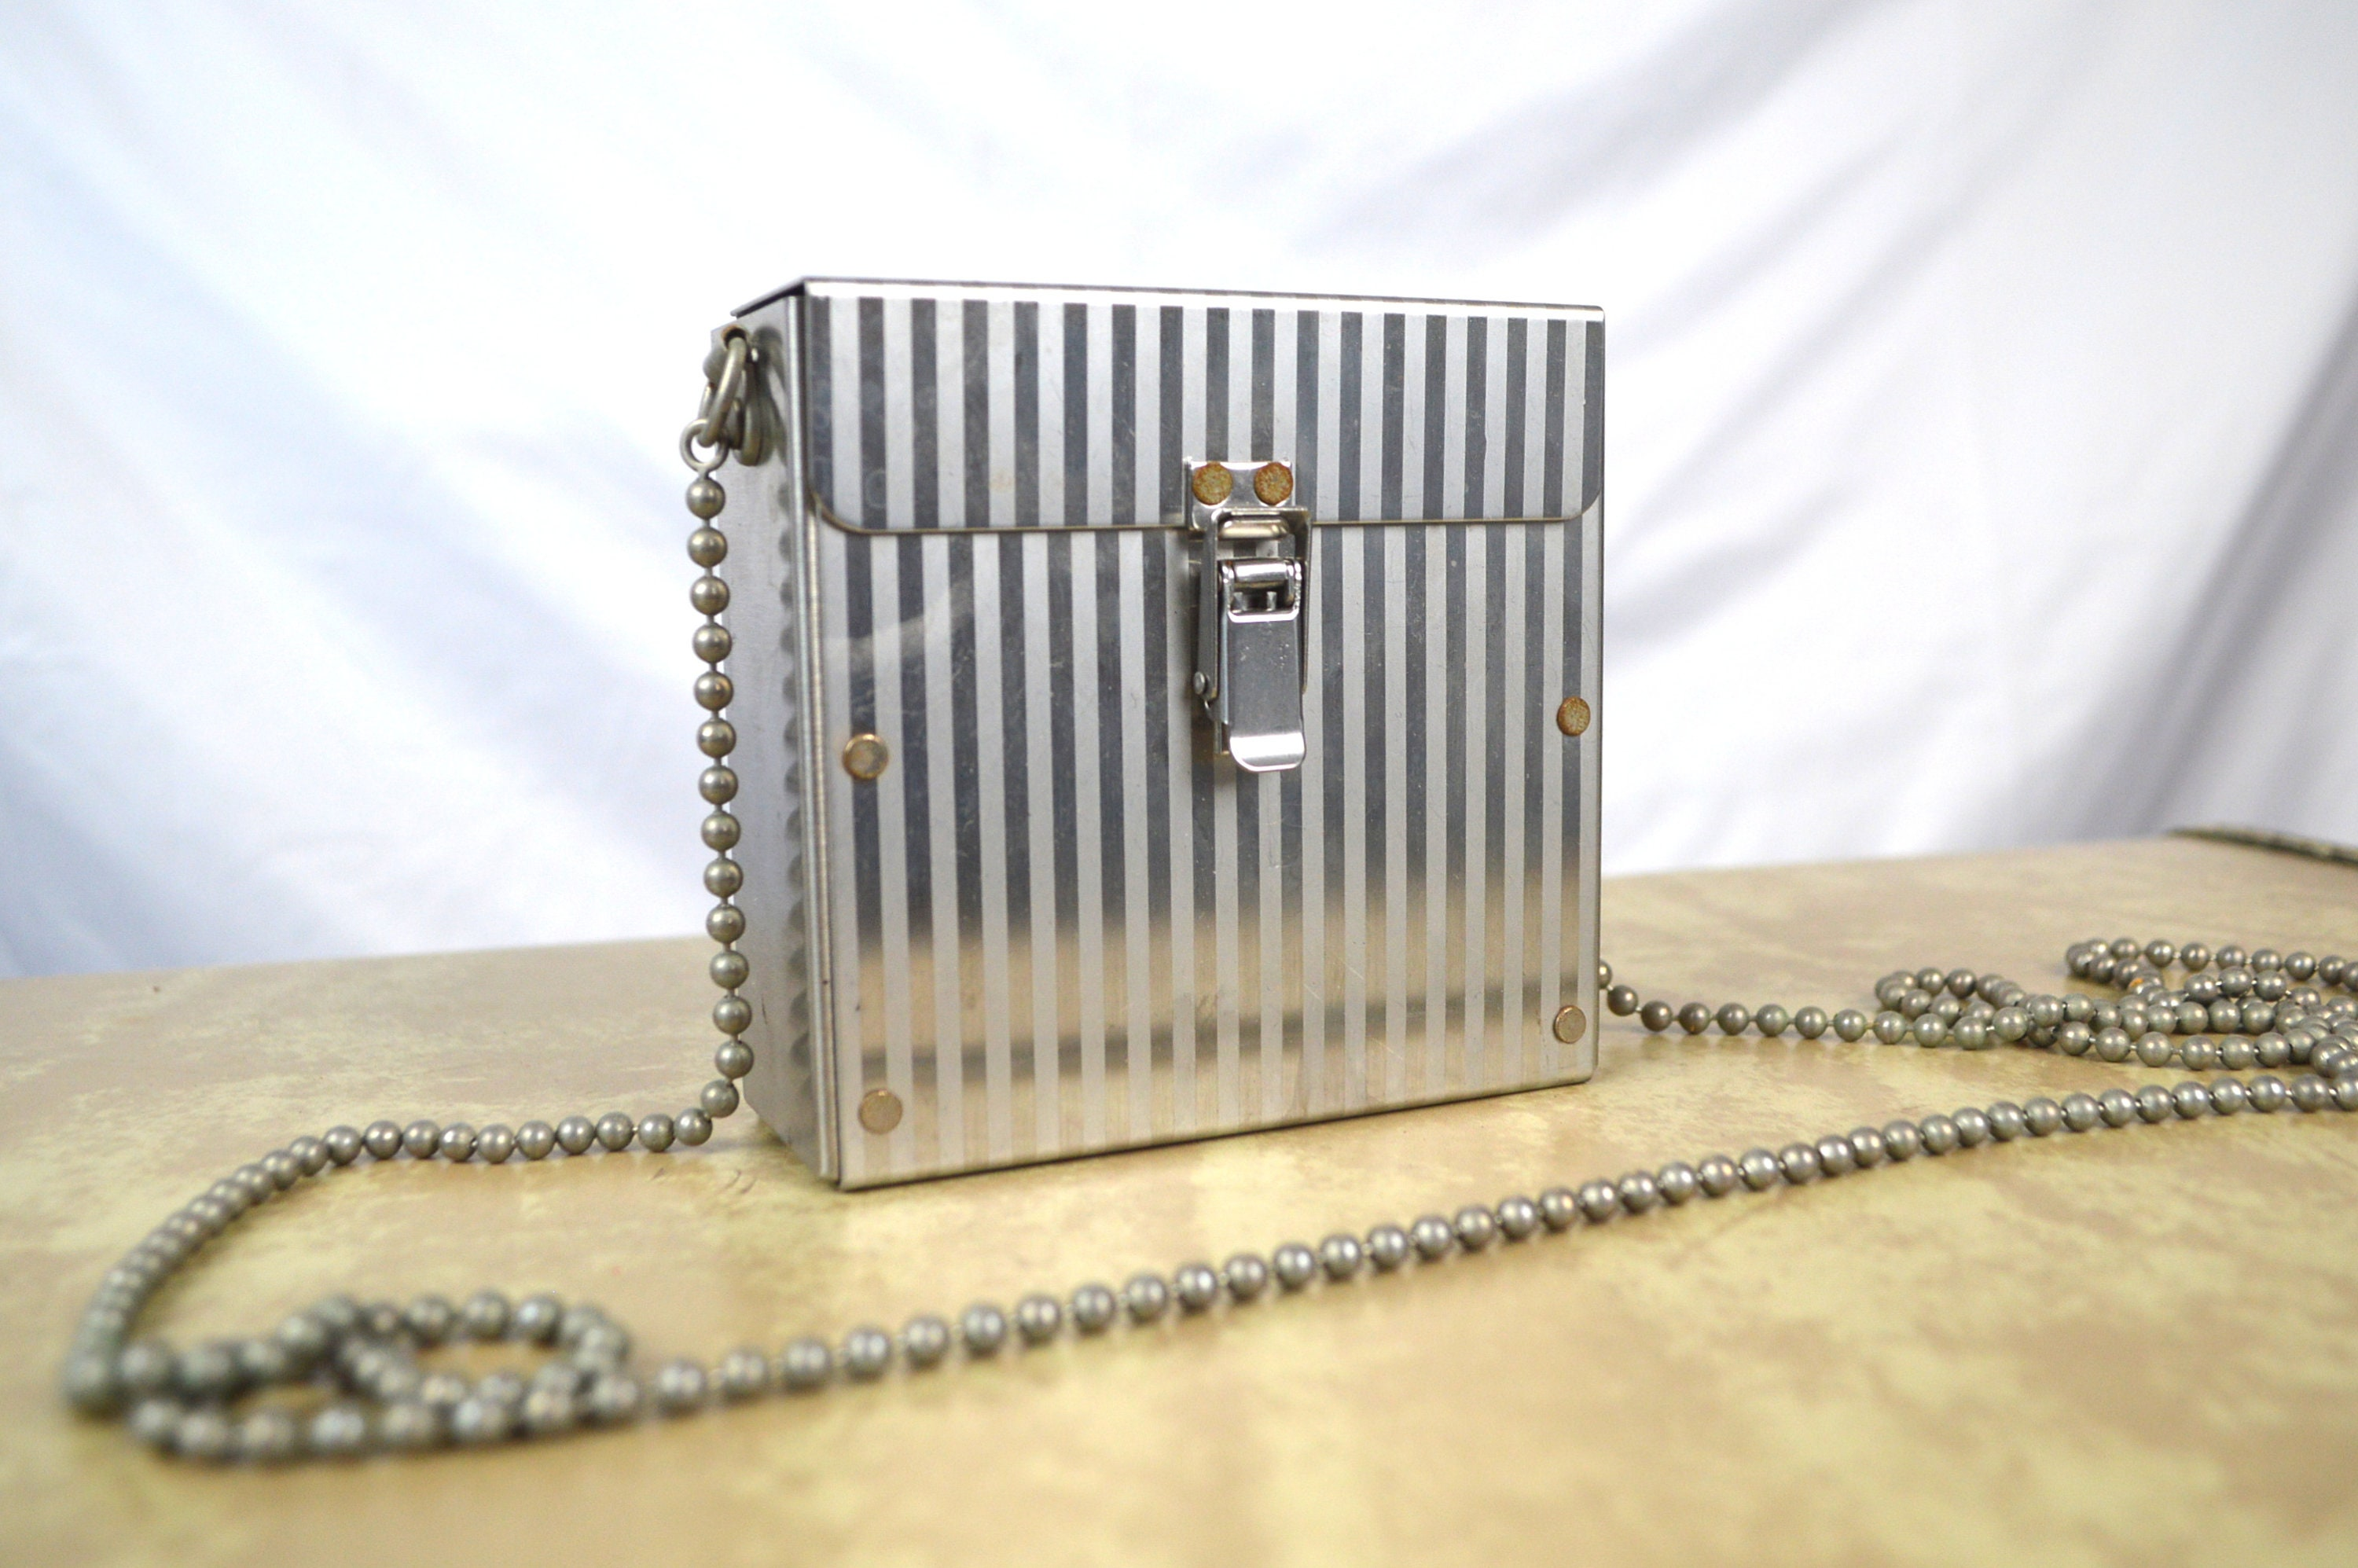 7ba1f3beed05 Vintage Authentic WENDY STEVENS Stainless Steel Crossbody